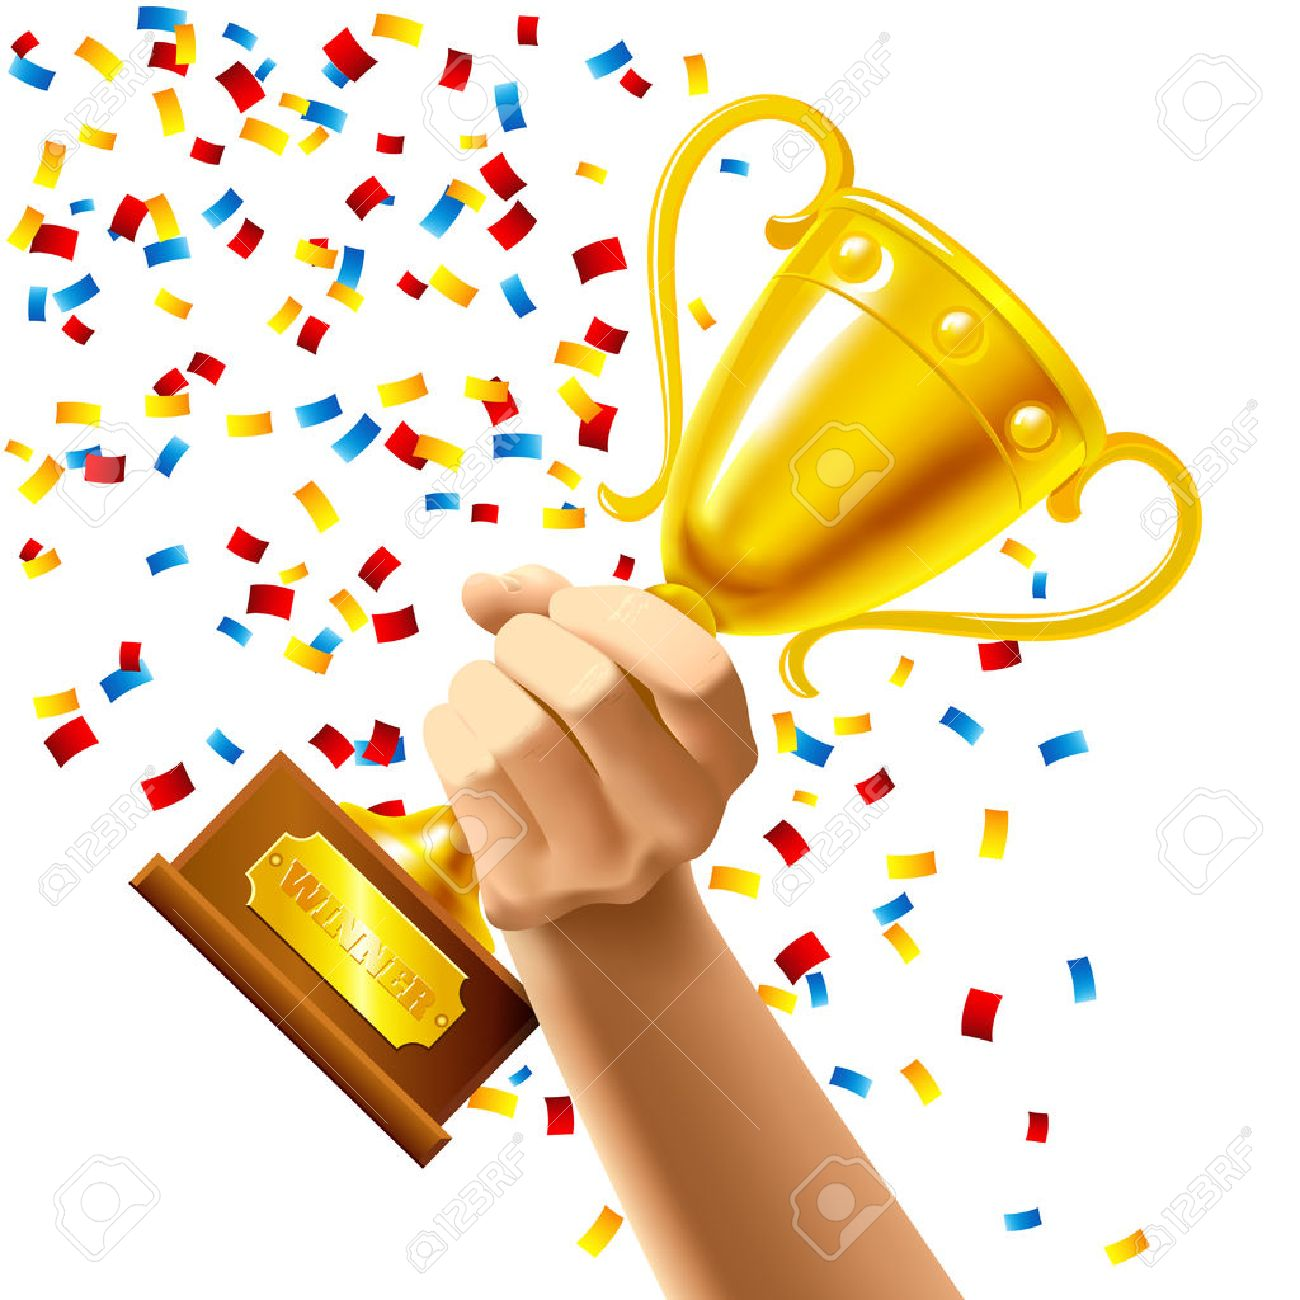 Hand holding a winner trophy cup in multi colored confetti concept vector illustration - 39266640